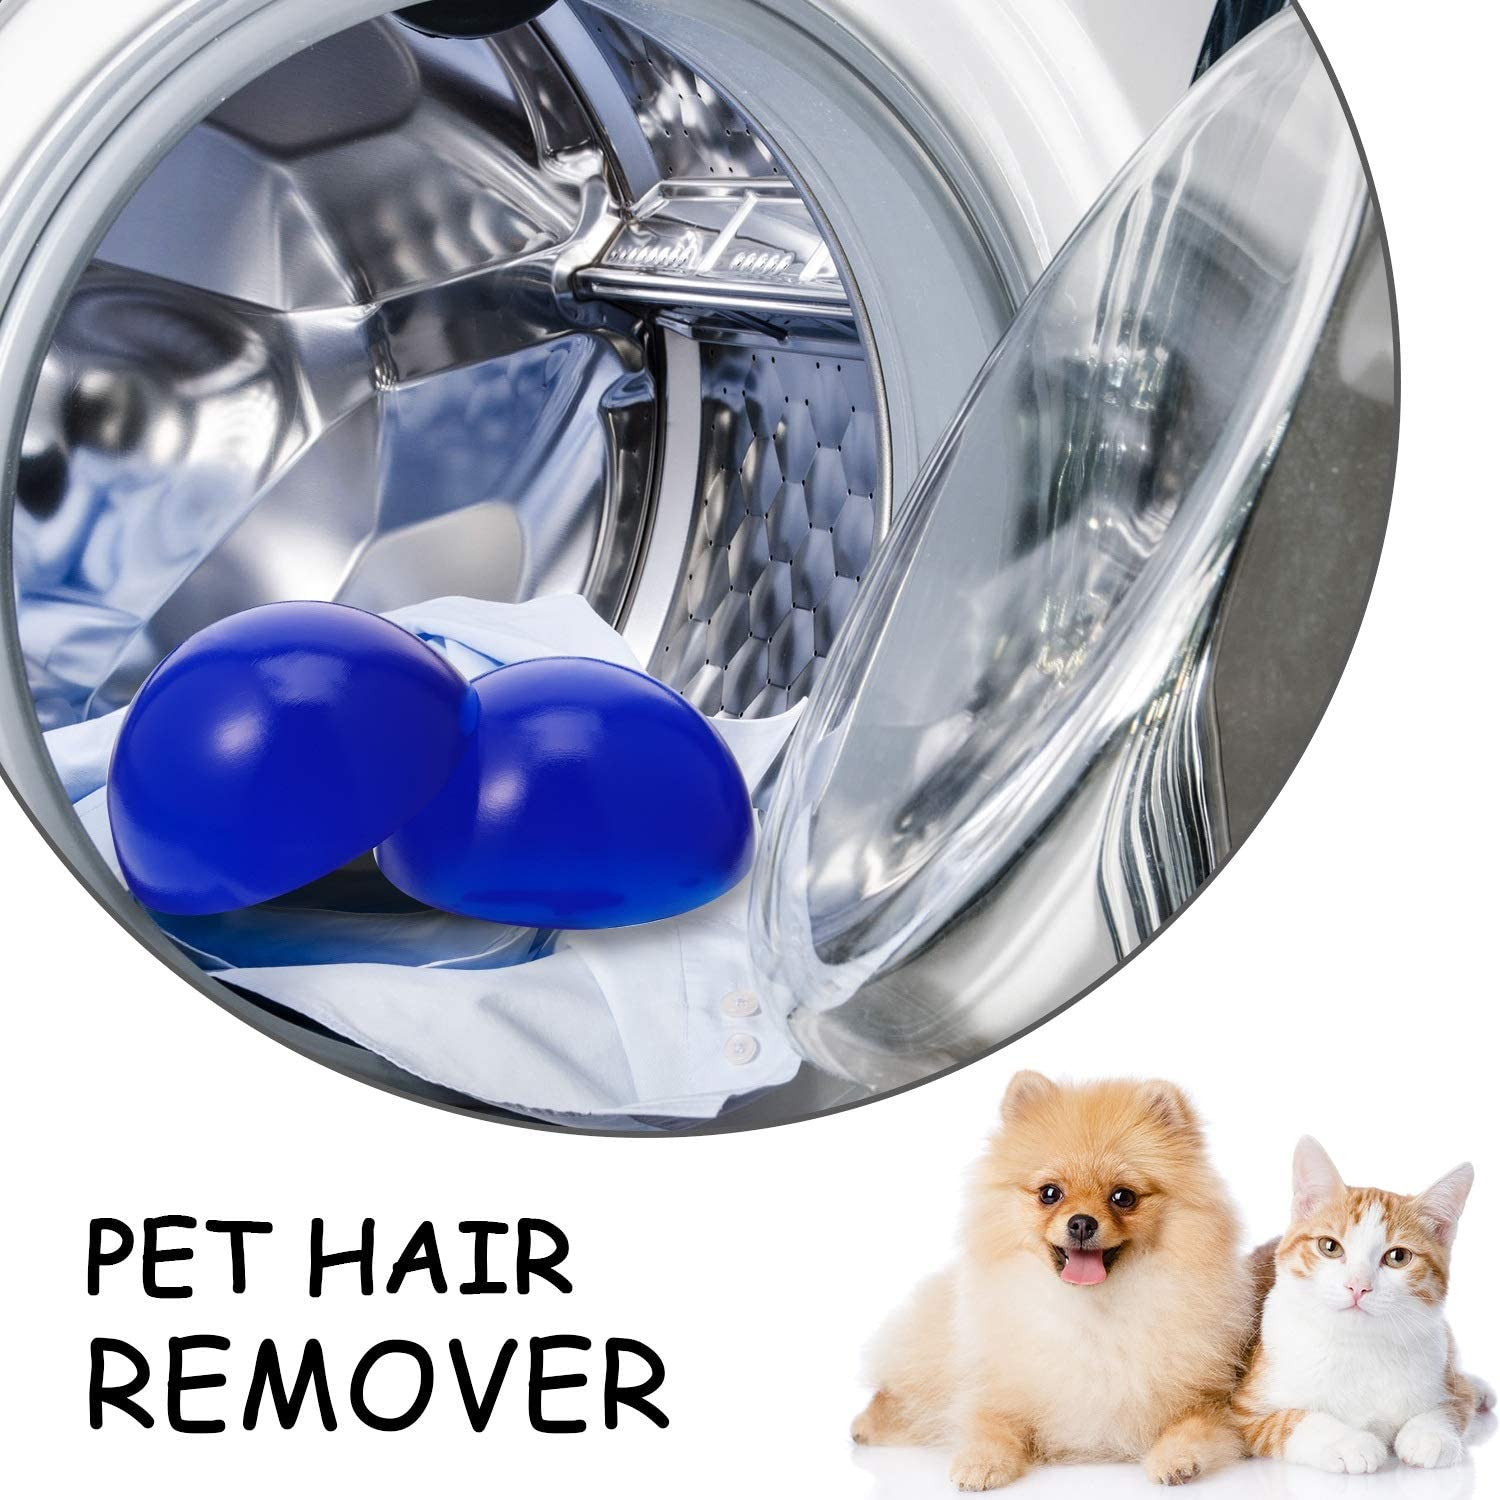 Mudder 2 Packs Pet Hair Remover Dryer Ball Clothes Clean, Dog Hair Cat Fur on Clothes Removal Tool for Laundry Dryer